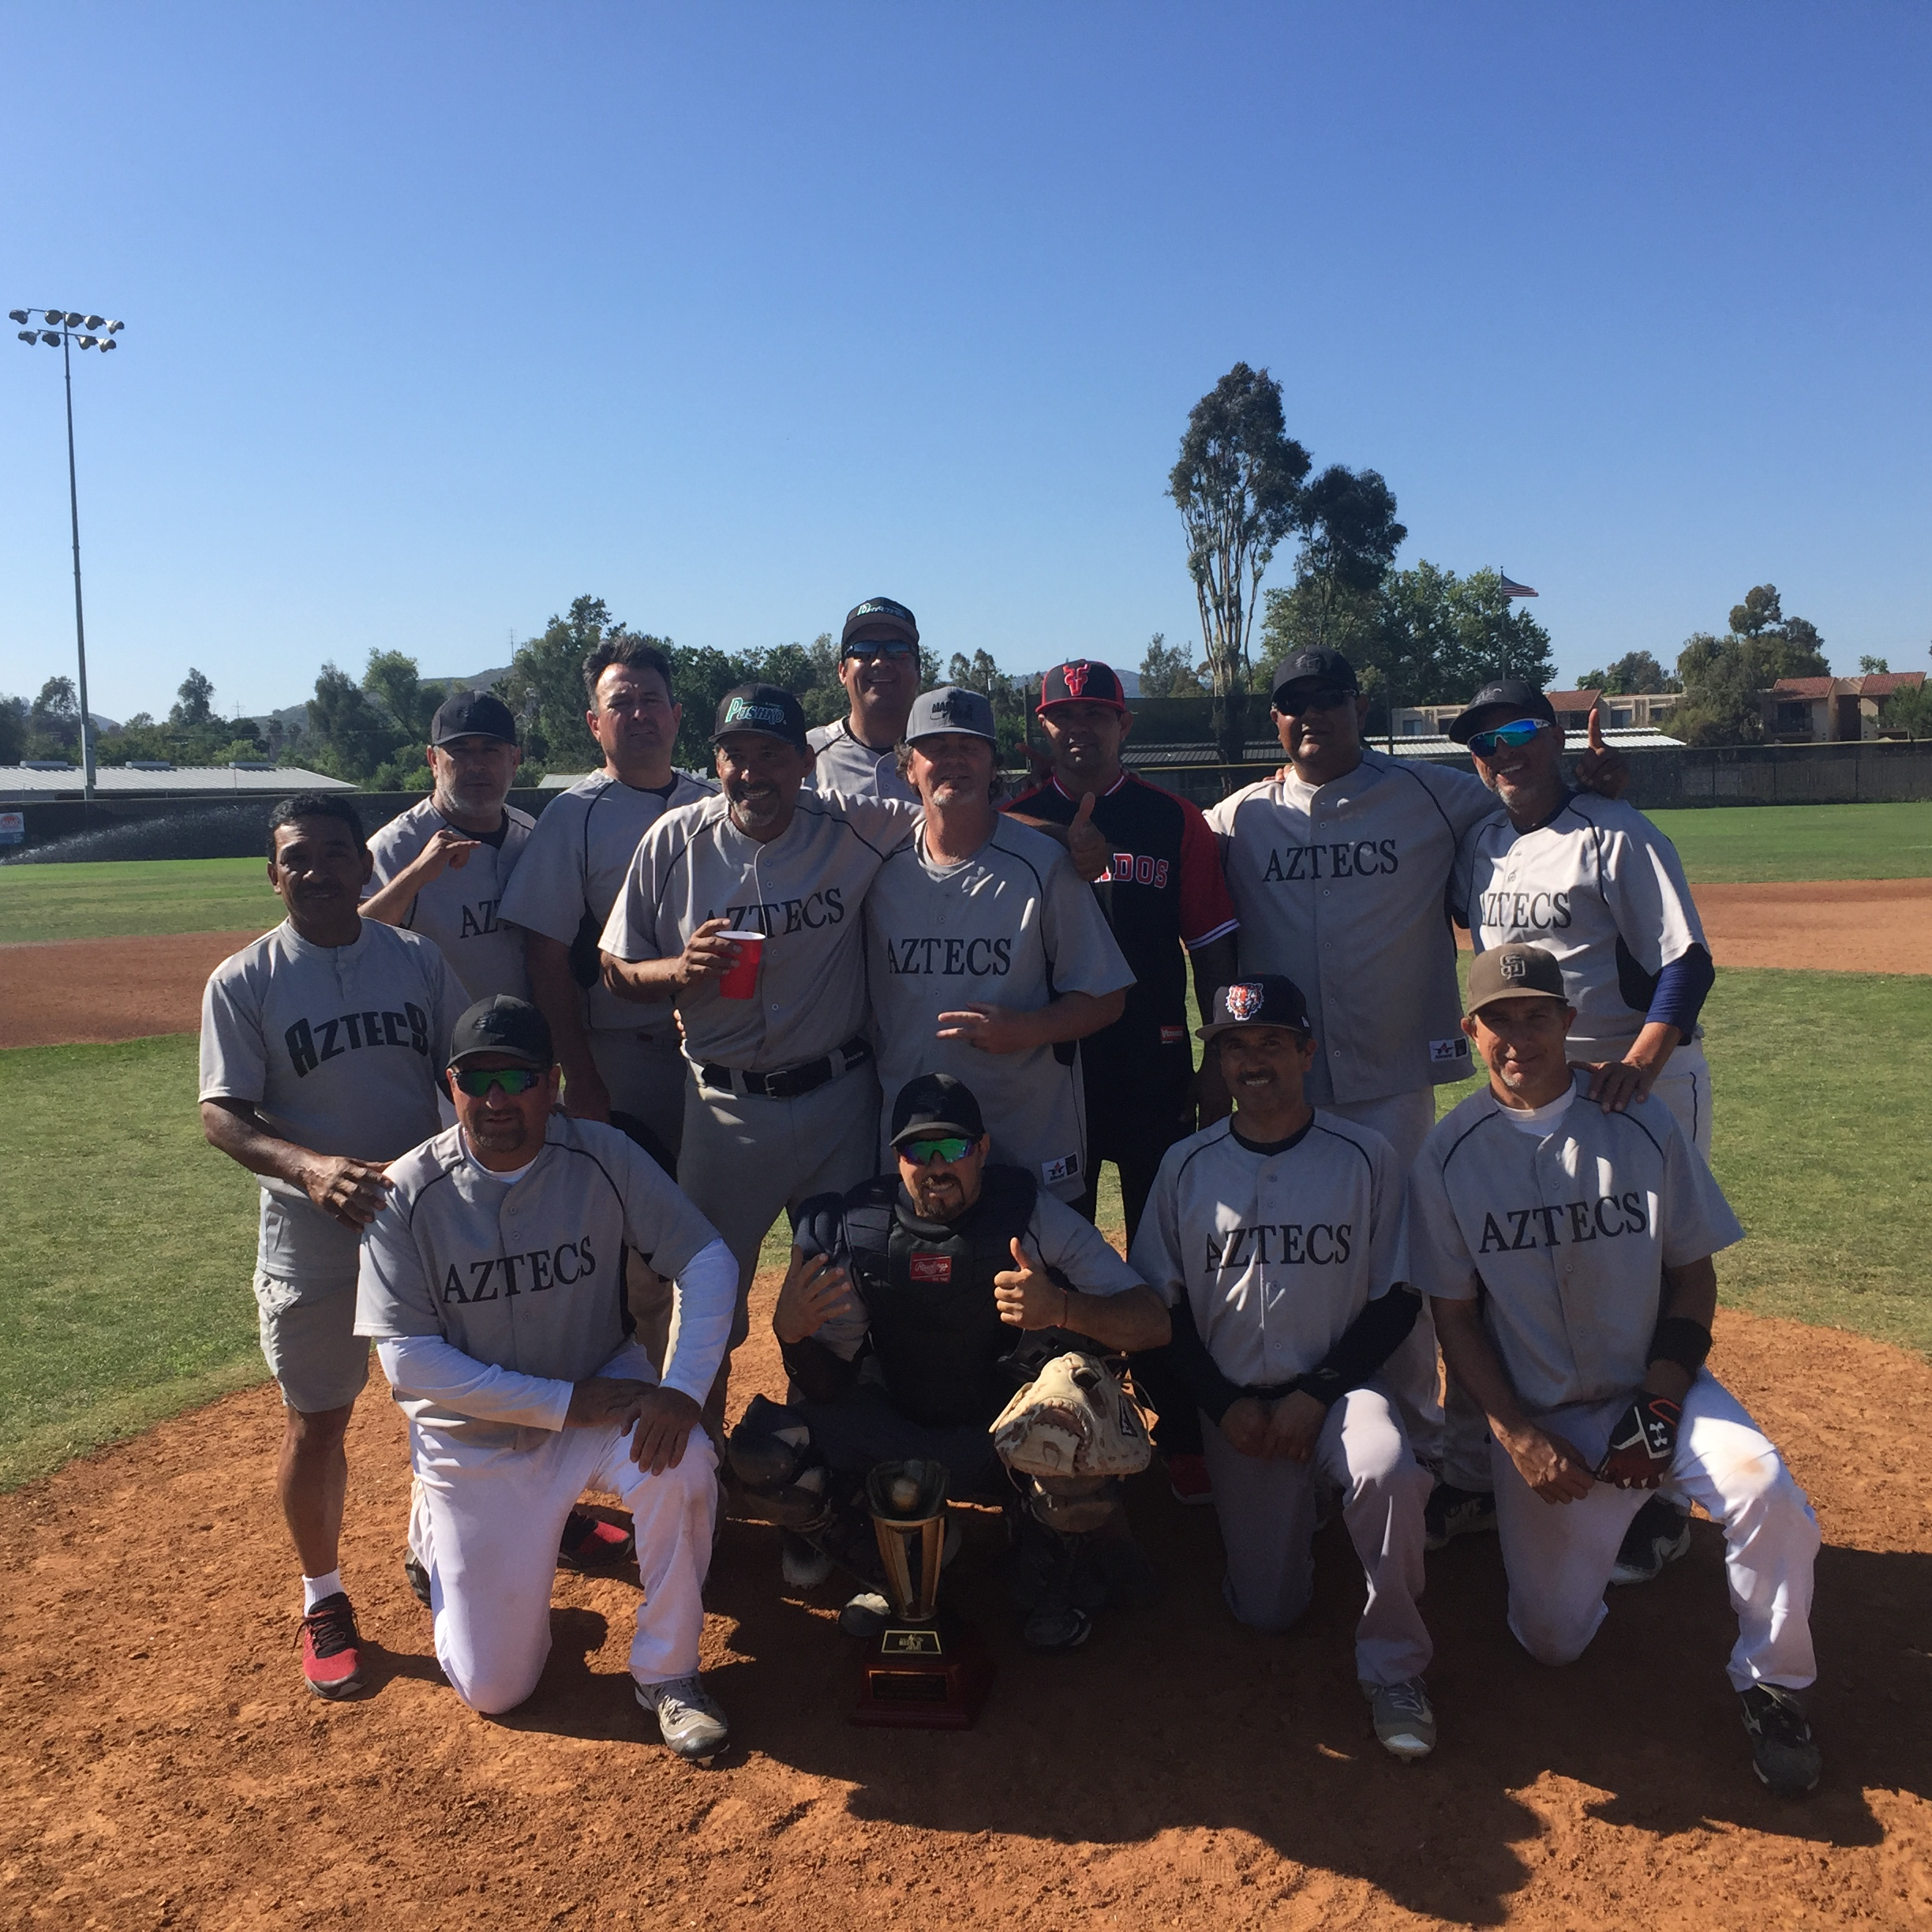 Congratulations to the  Aztecs, 2019 MSBL 45+ Division Spring Champions